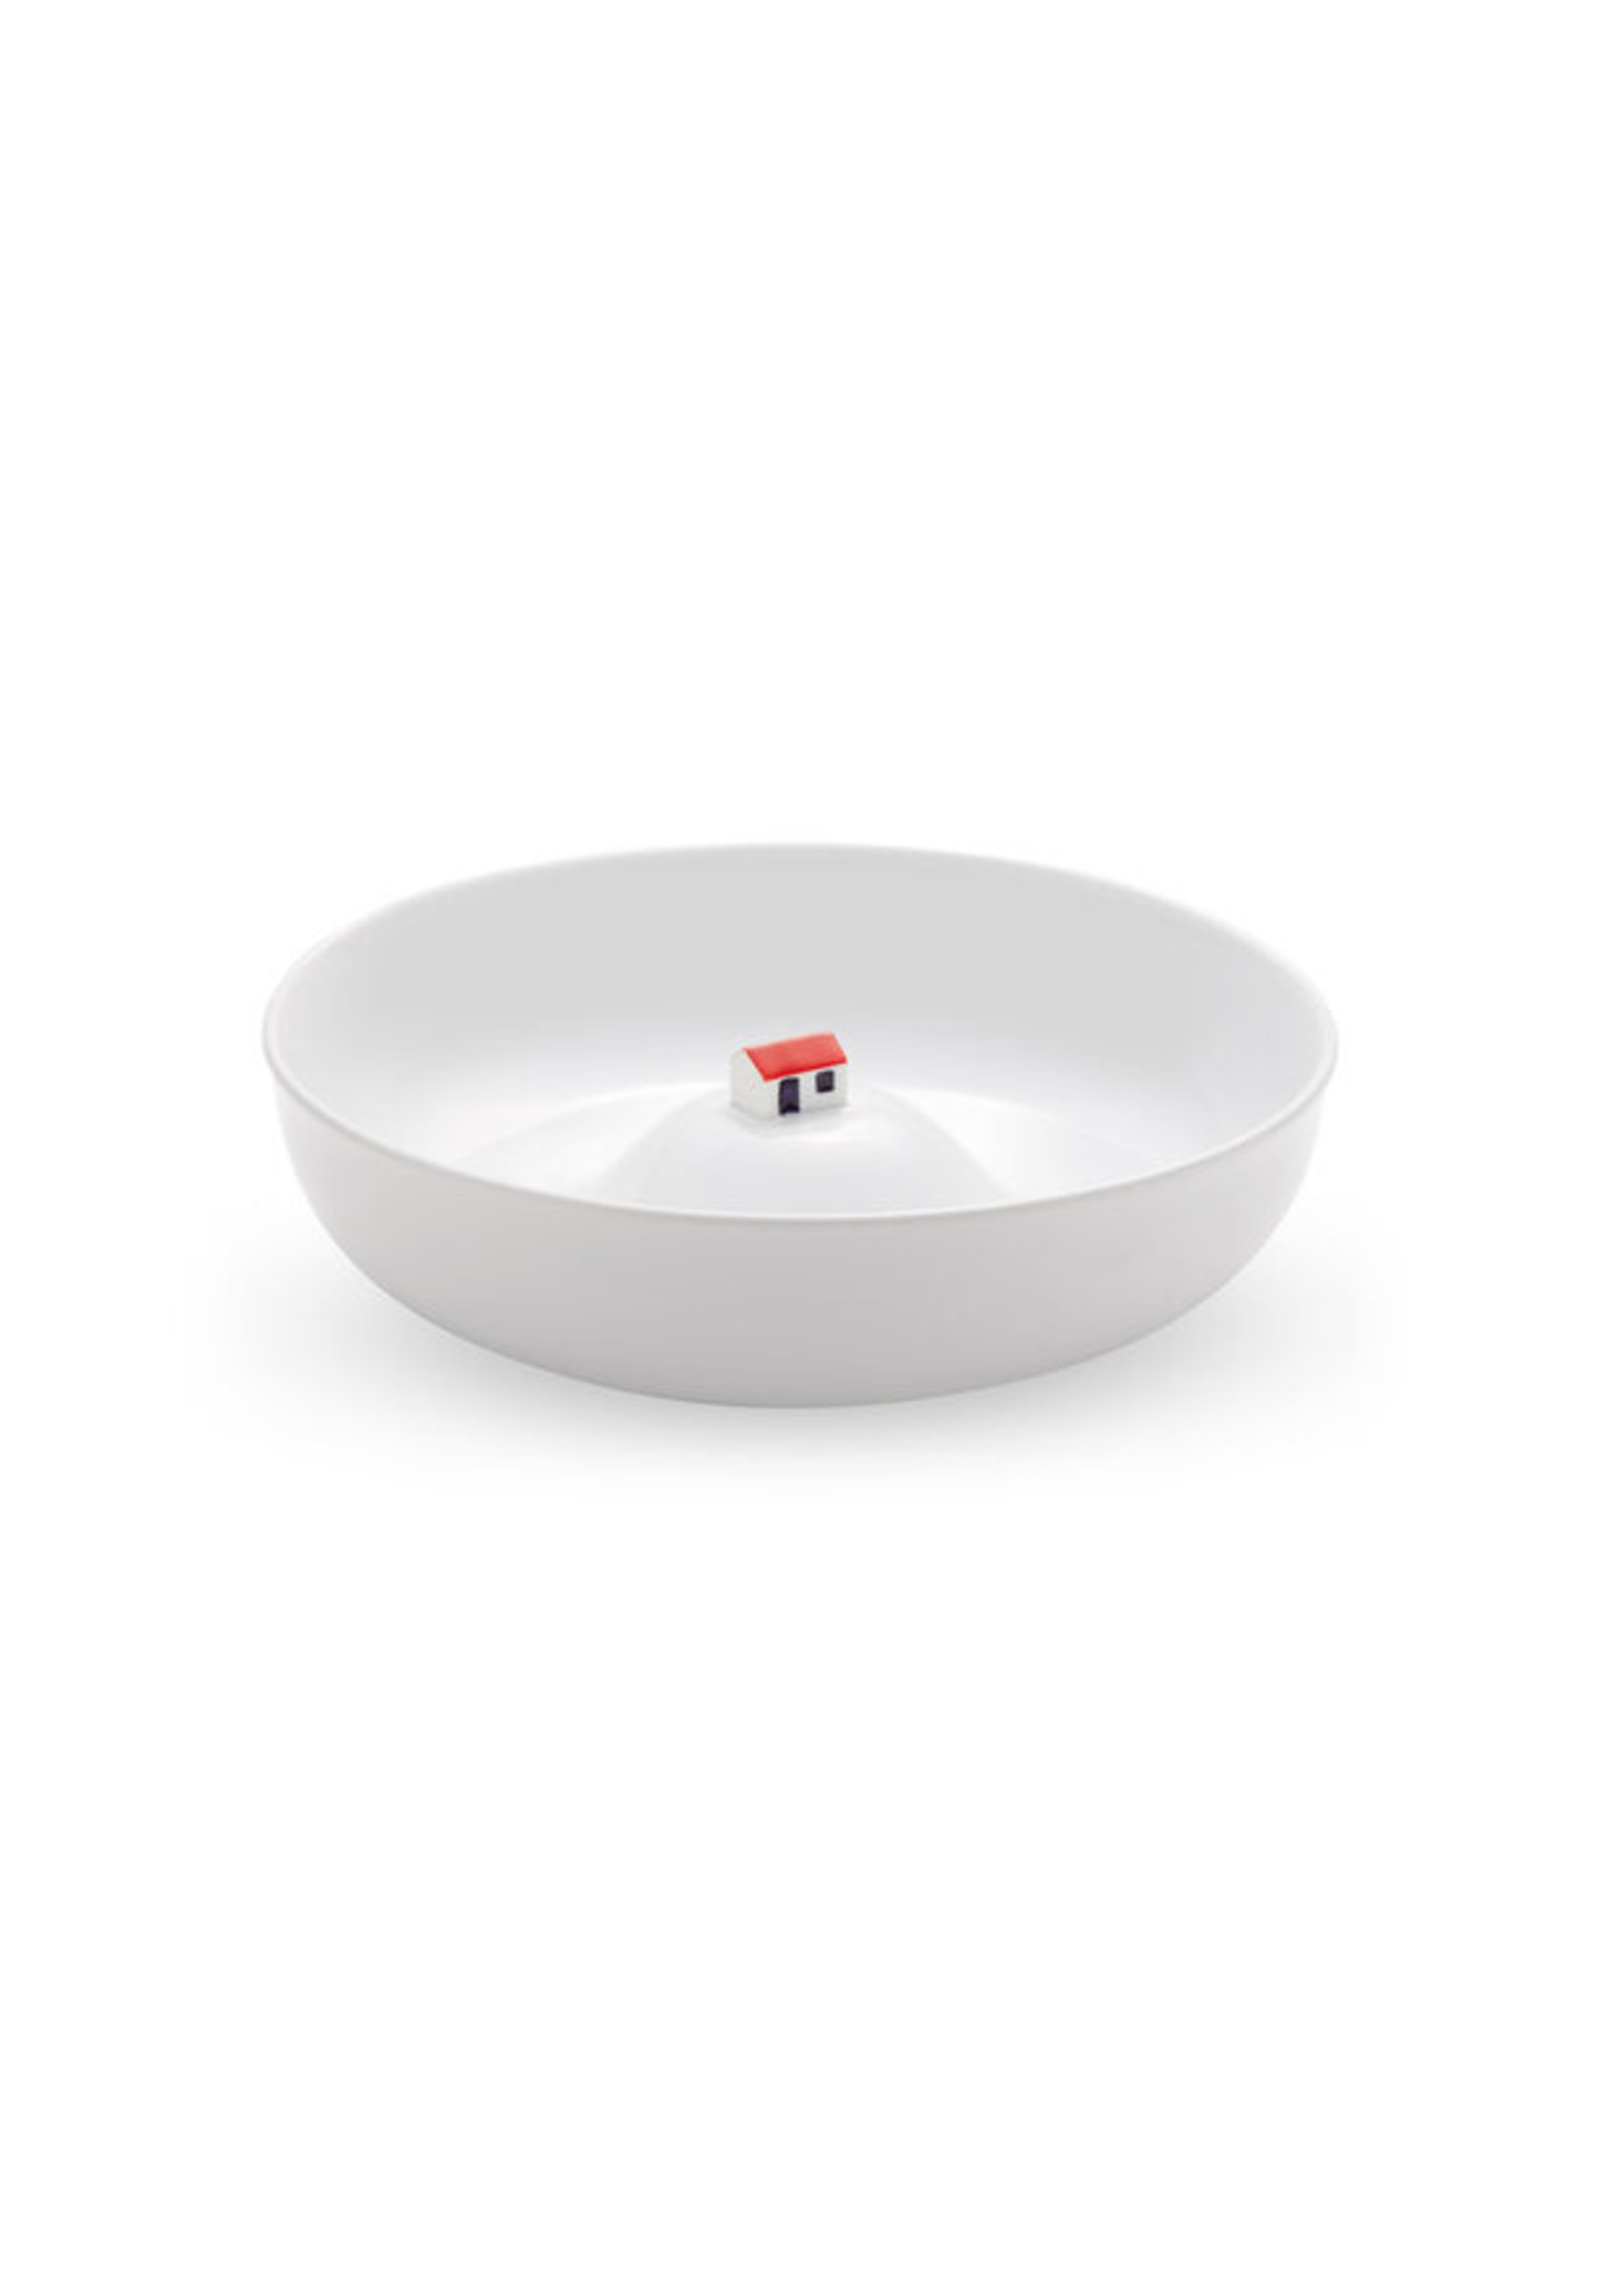 Bowl with house white from MoMA